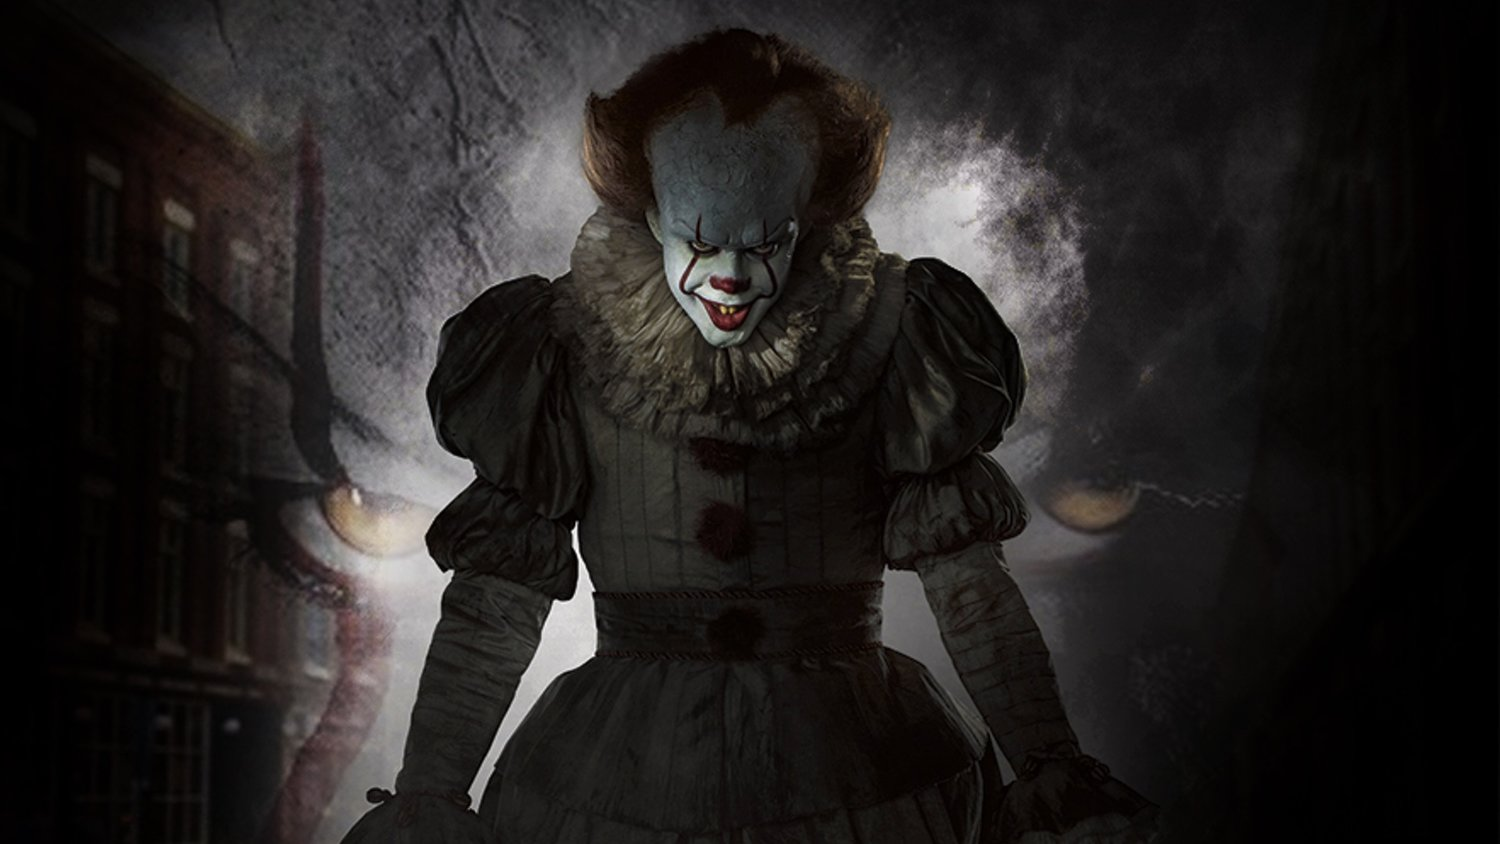 Stephen King Has Seen the New Film Adaptation of IT and He Says Fans Should Stop Worrying